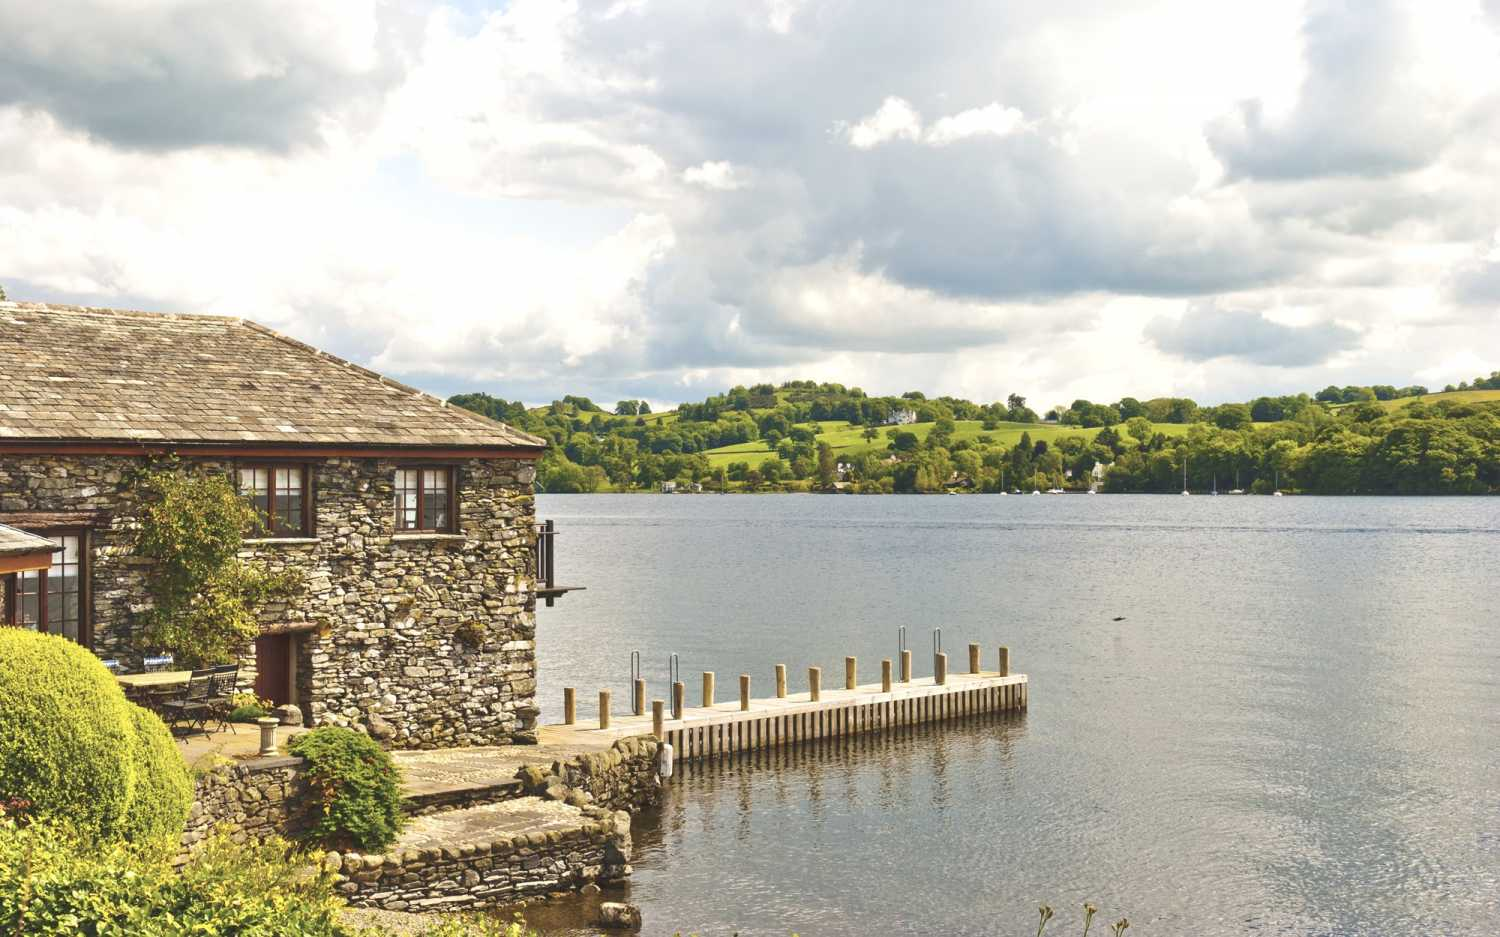 Picture of Derbyshire - Last Minute Cottages in Derbyshire